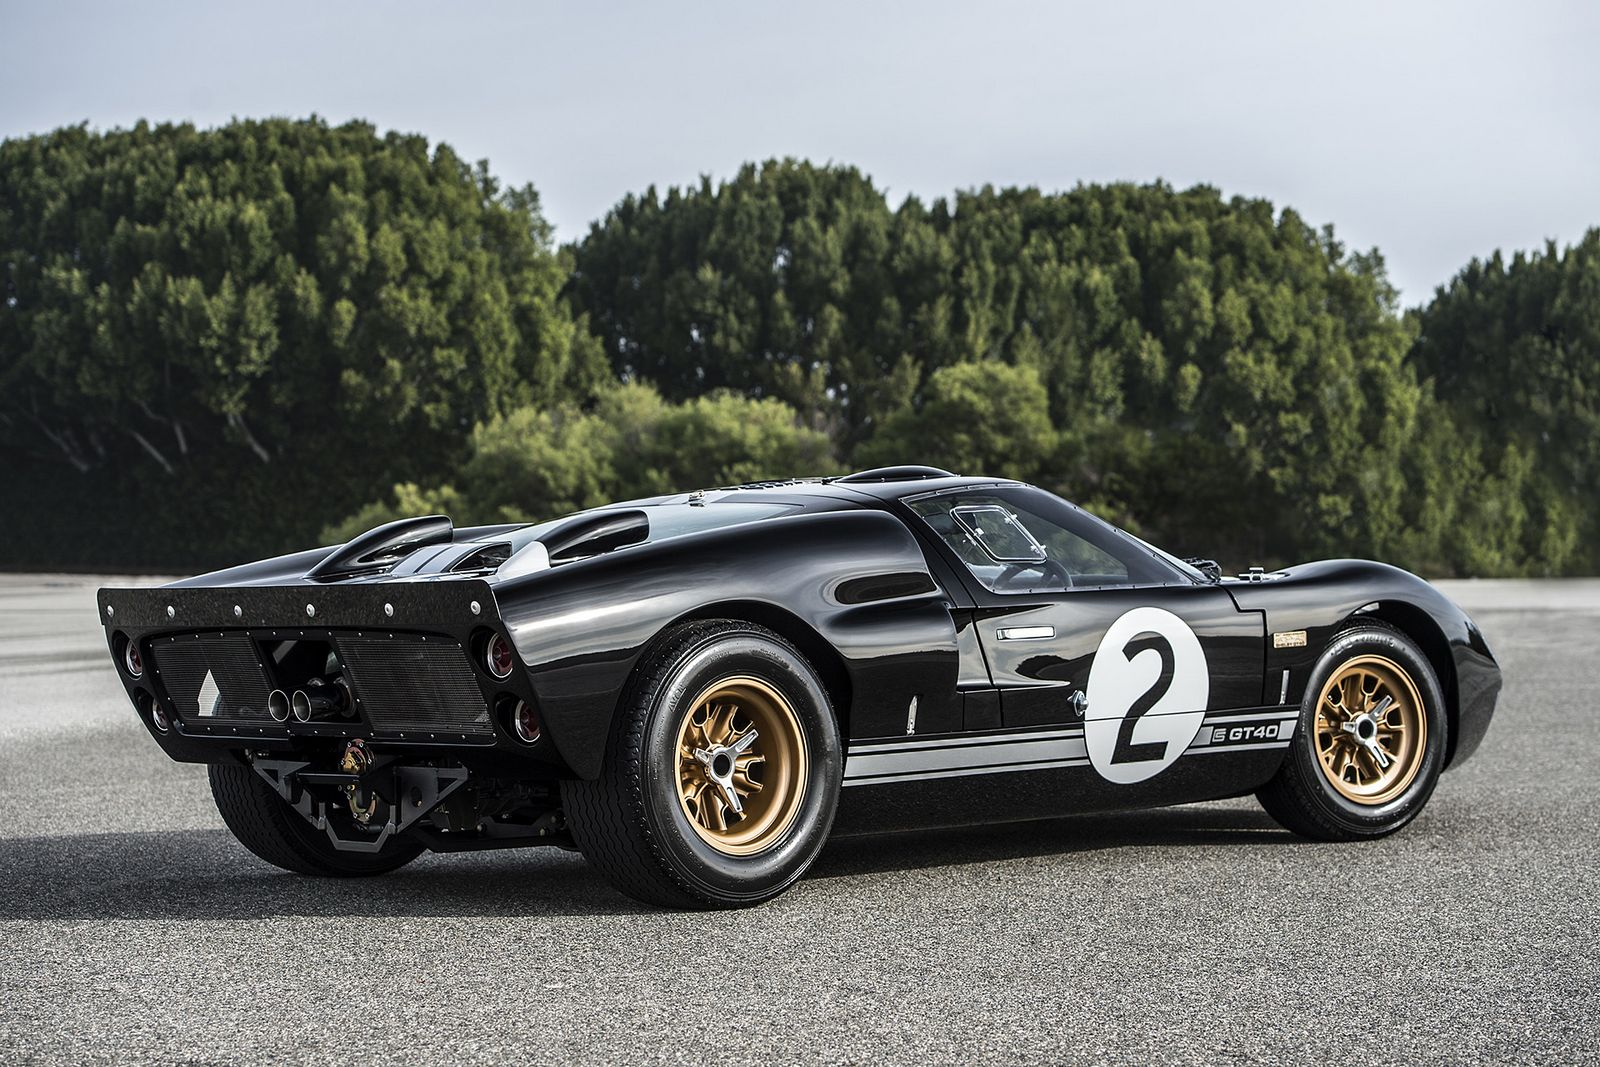 Gt40 For Sale >> GT40 50th Anniversary By Shelby And Superformance Is One Special Replica | Carscoops